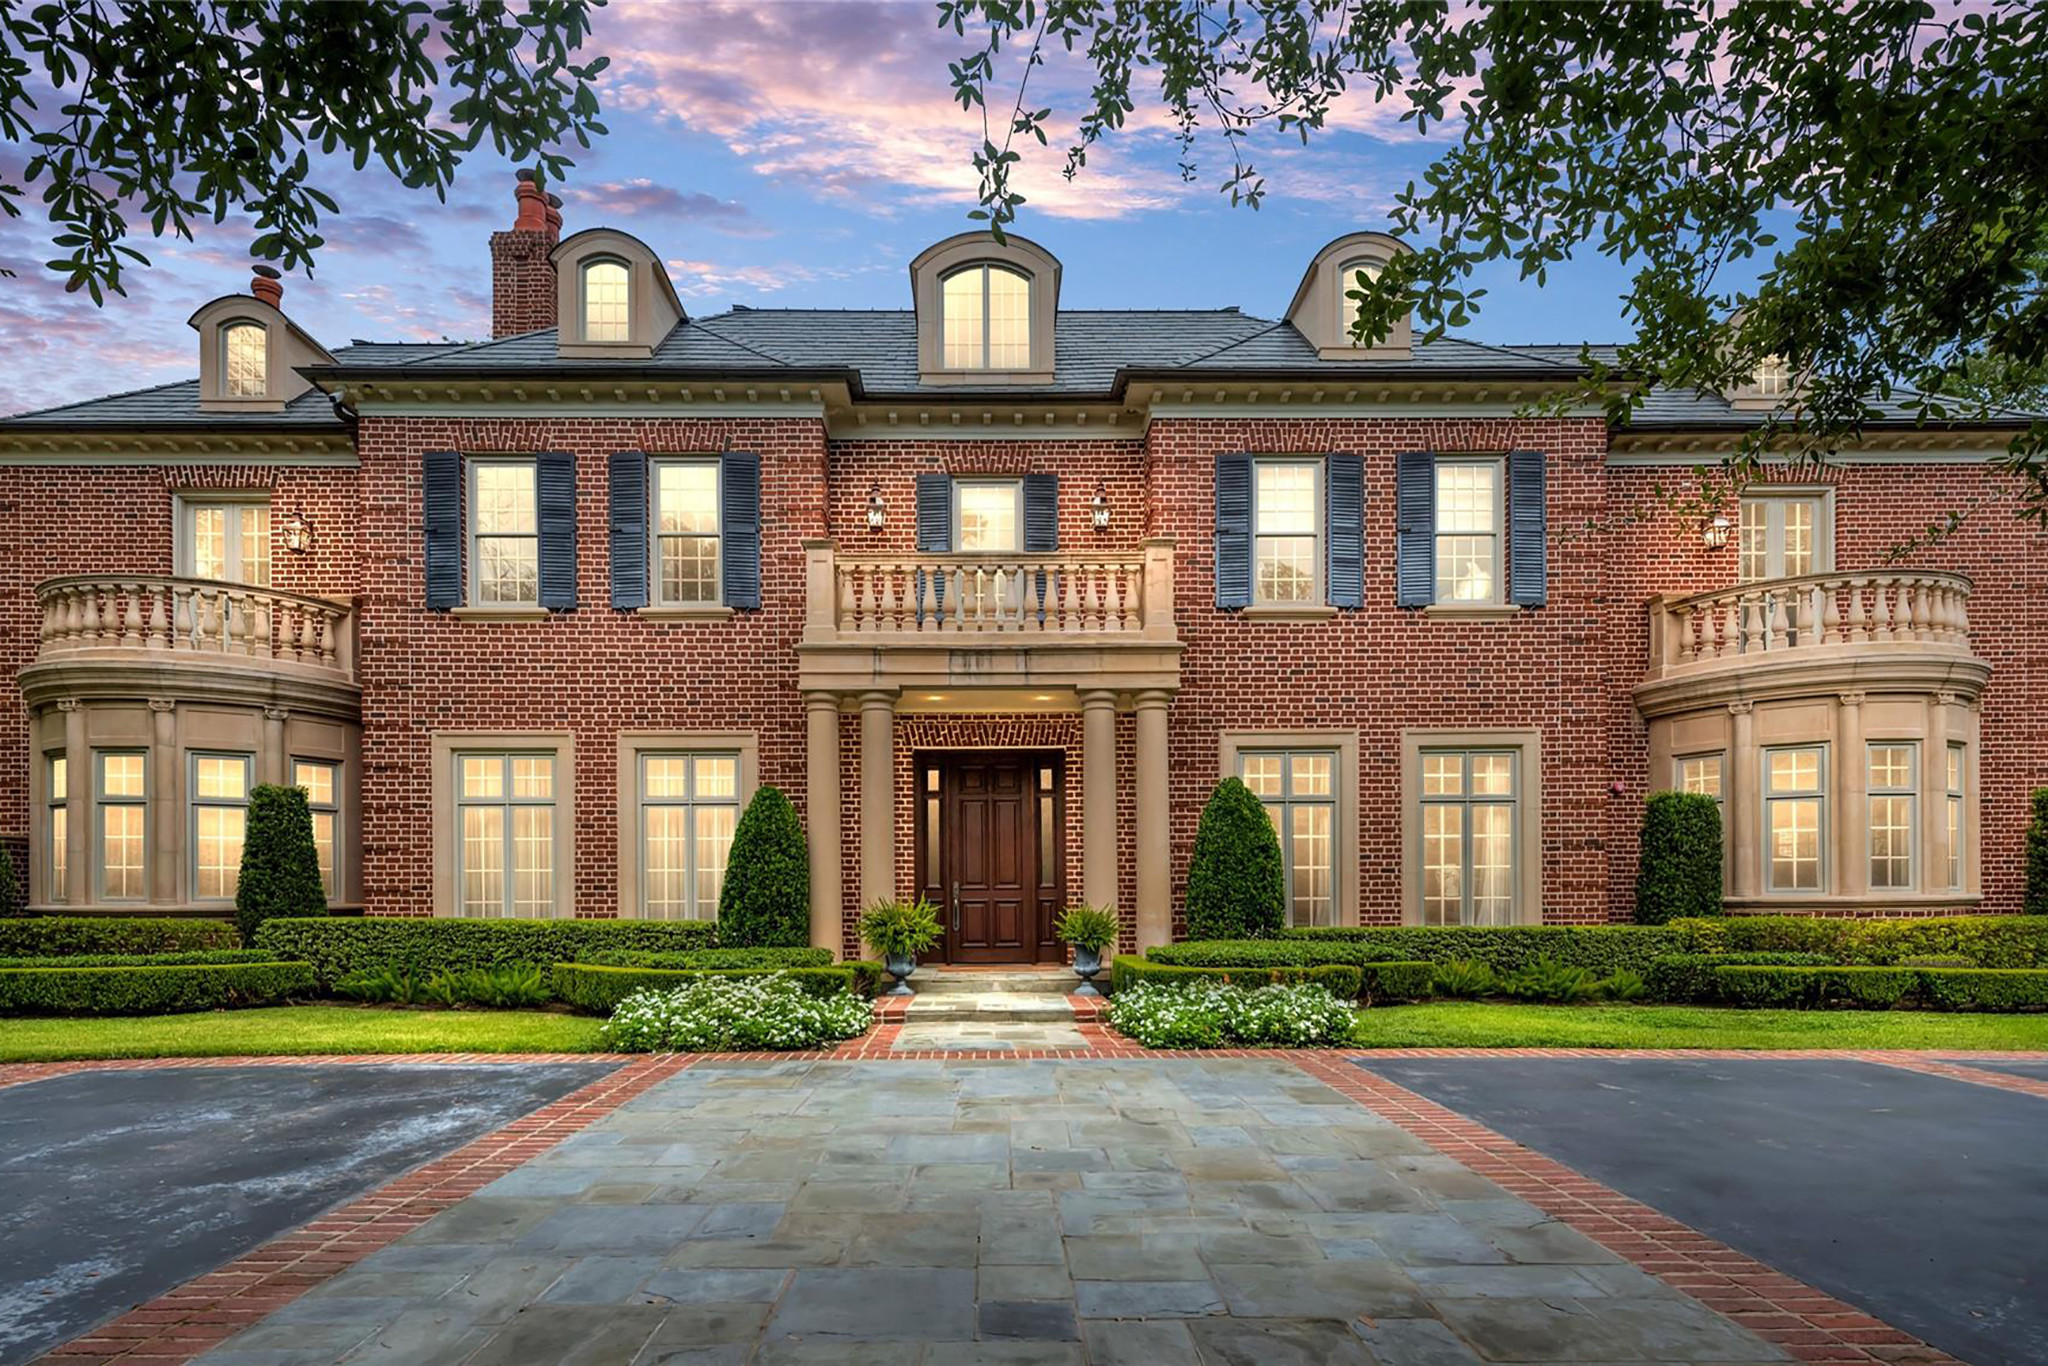 5-Bedroom House In Piney Point Village